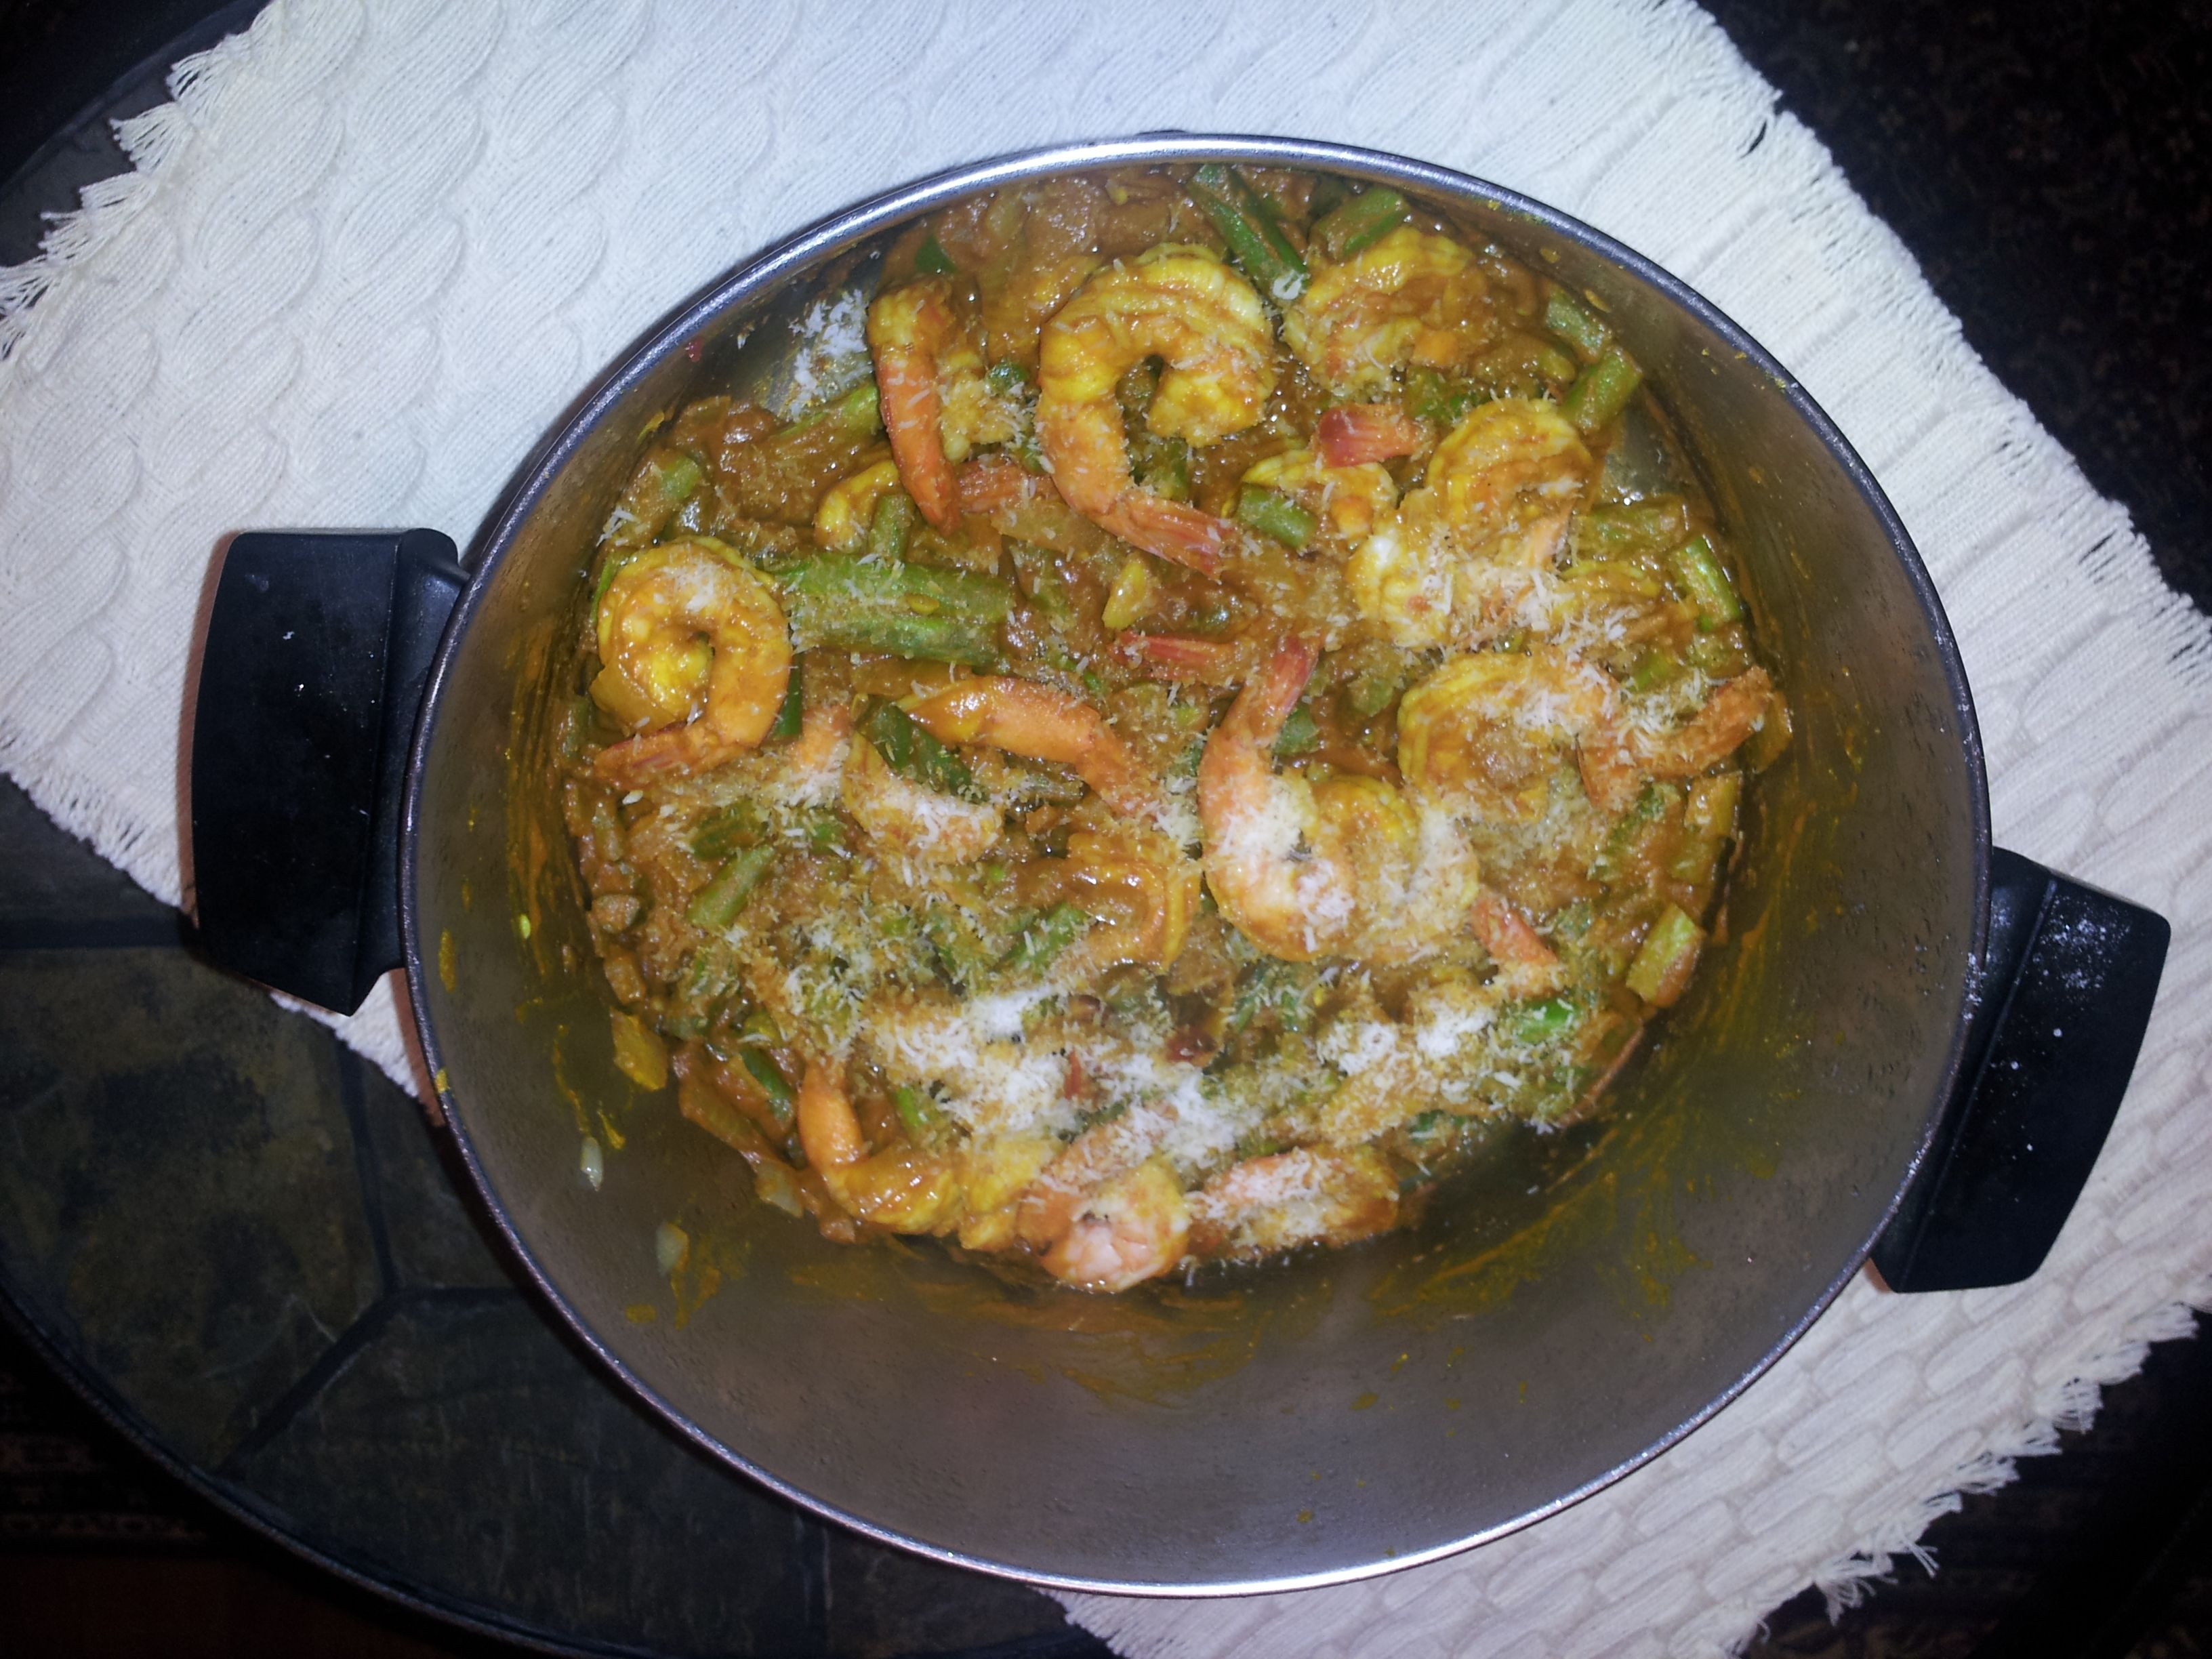 Shrimp and string bean subji  This is a Southern Indian shrimp recipe. If you like shrimp you will like this recipe. Along the coast in India they love there seafood. This dish is delicious and nutritious. Many Indians consider fish to be vegetarian. They have been eating fish for over 5000 years.